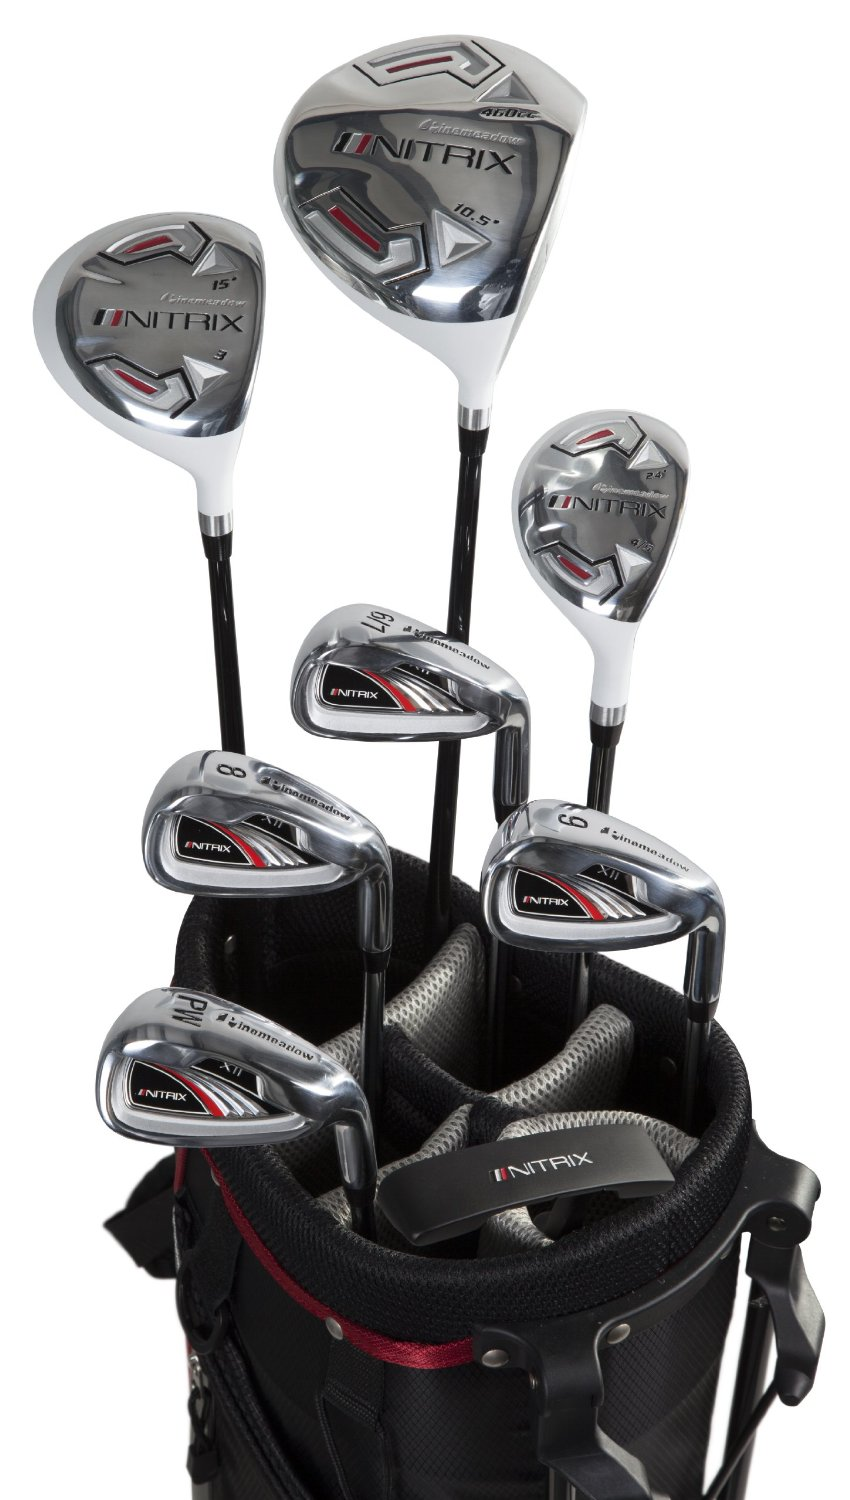 Pinemeadow PRE Golf Clubs Review – 16 Pieces Set. Pinemeadow PRE Men's piece Complete Golf Set – There are many golf club choices for the beginner golfer. One great option is the Pinemeadow PRE Men's piece complete golf set for men who want several choices of clubs for their golfing games.